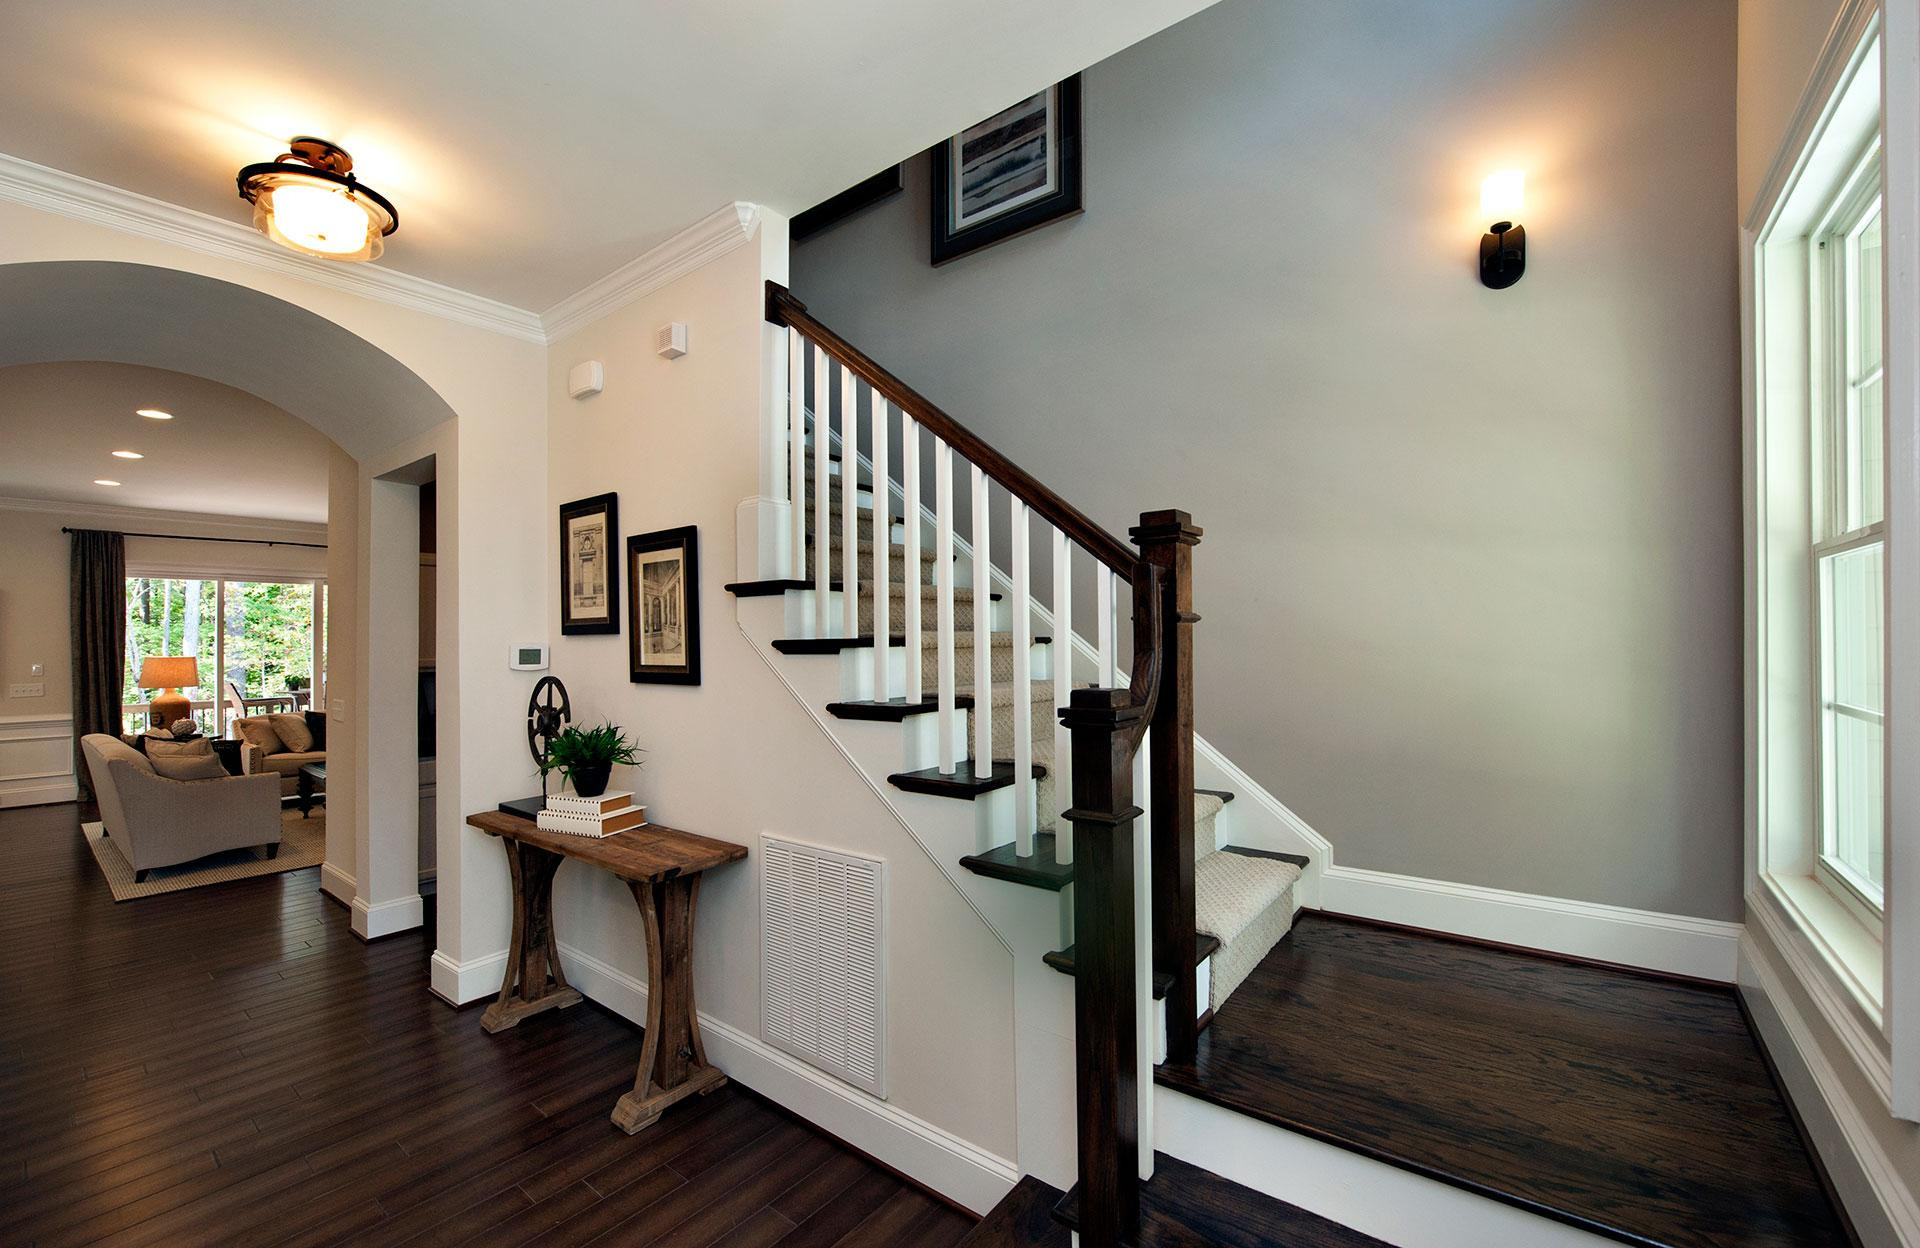 hardwood floor repair raleigh nc of brianna at willoughby rolesville nc inside foyer